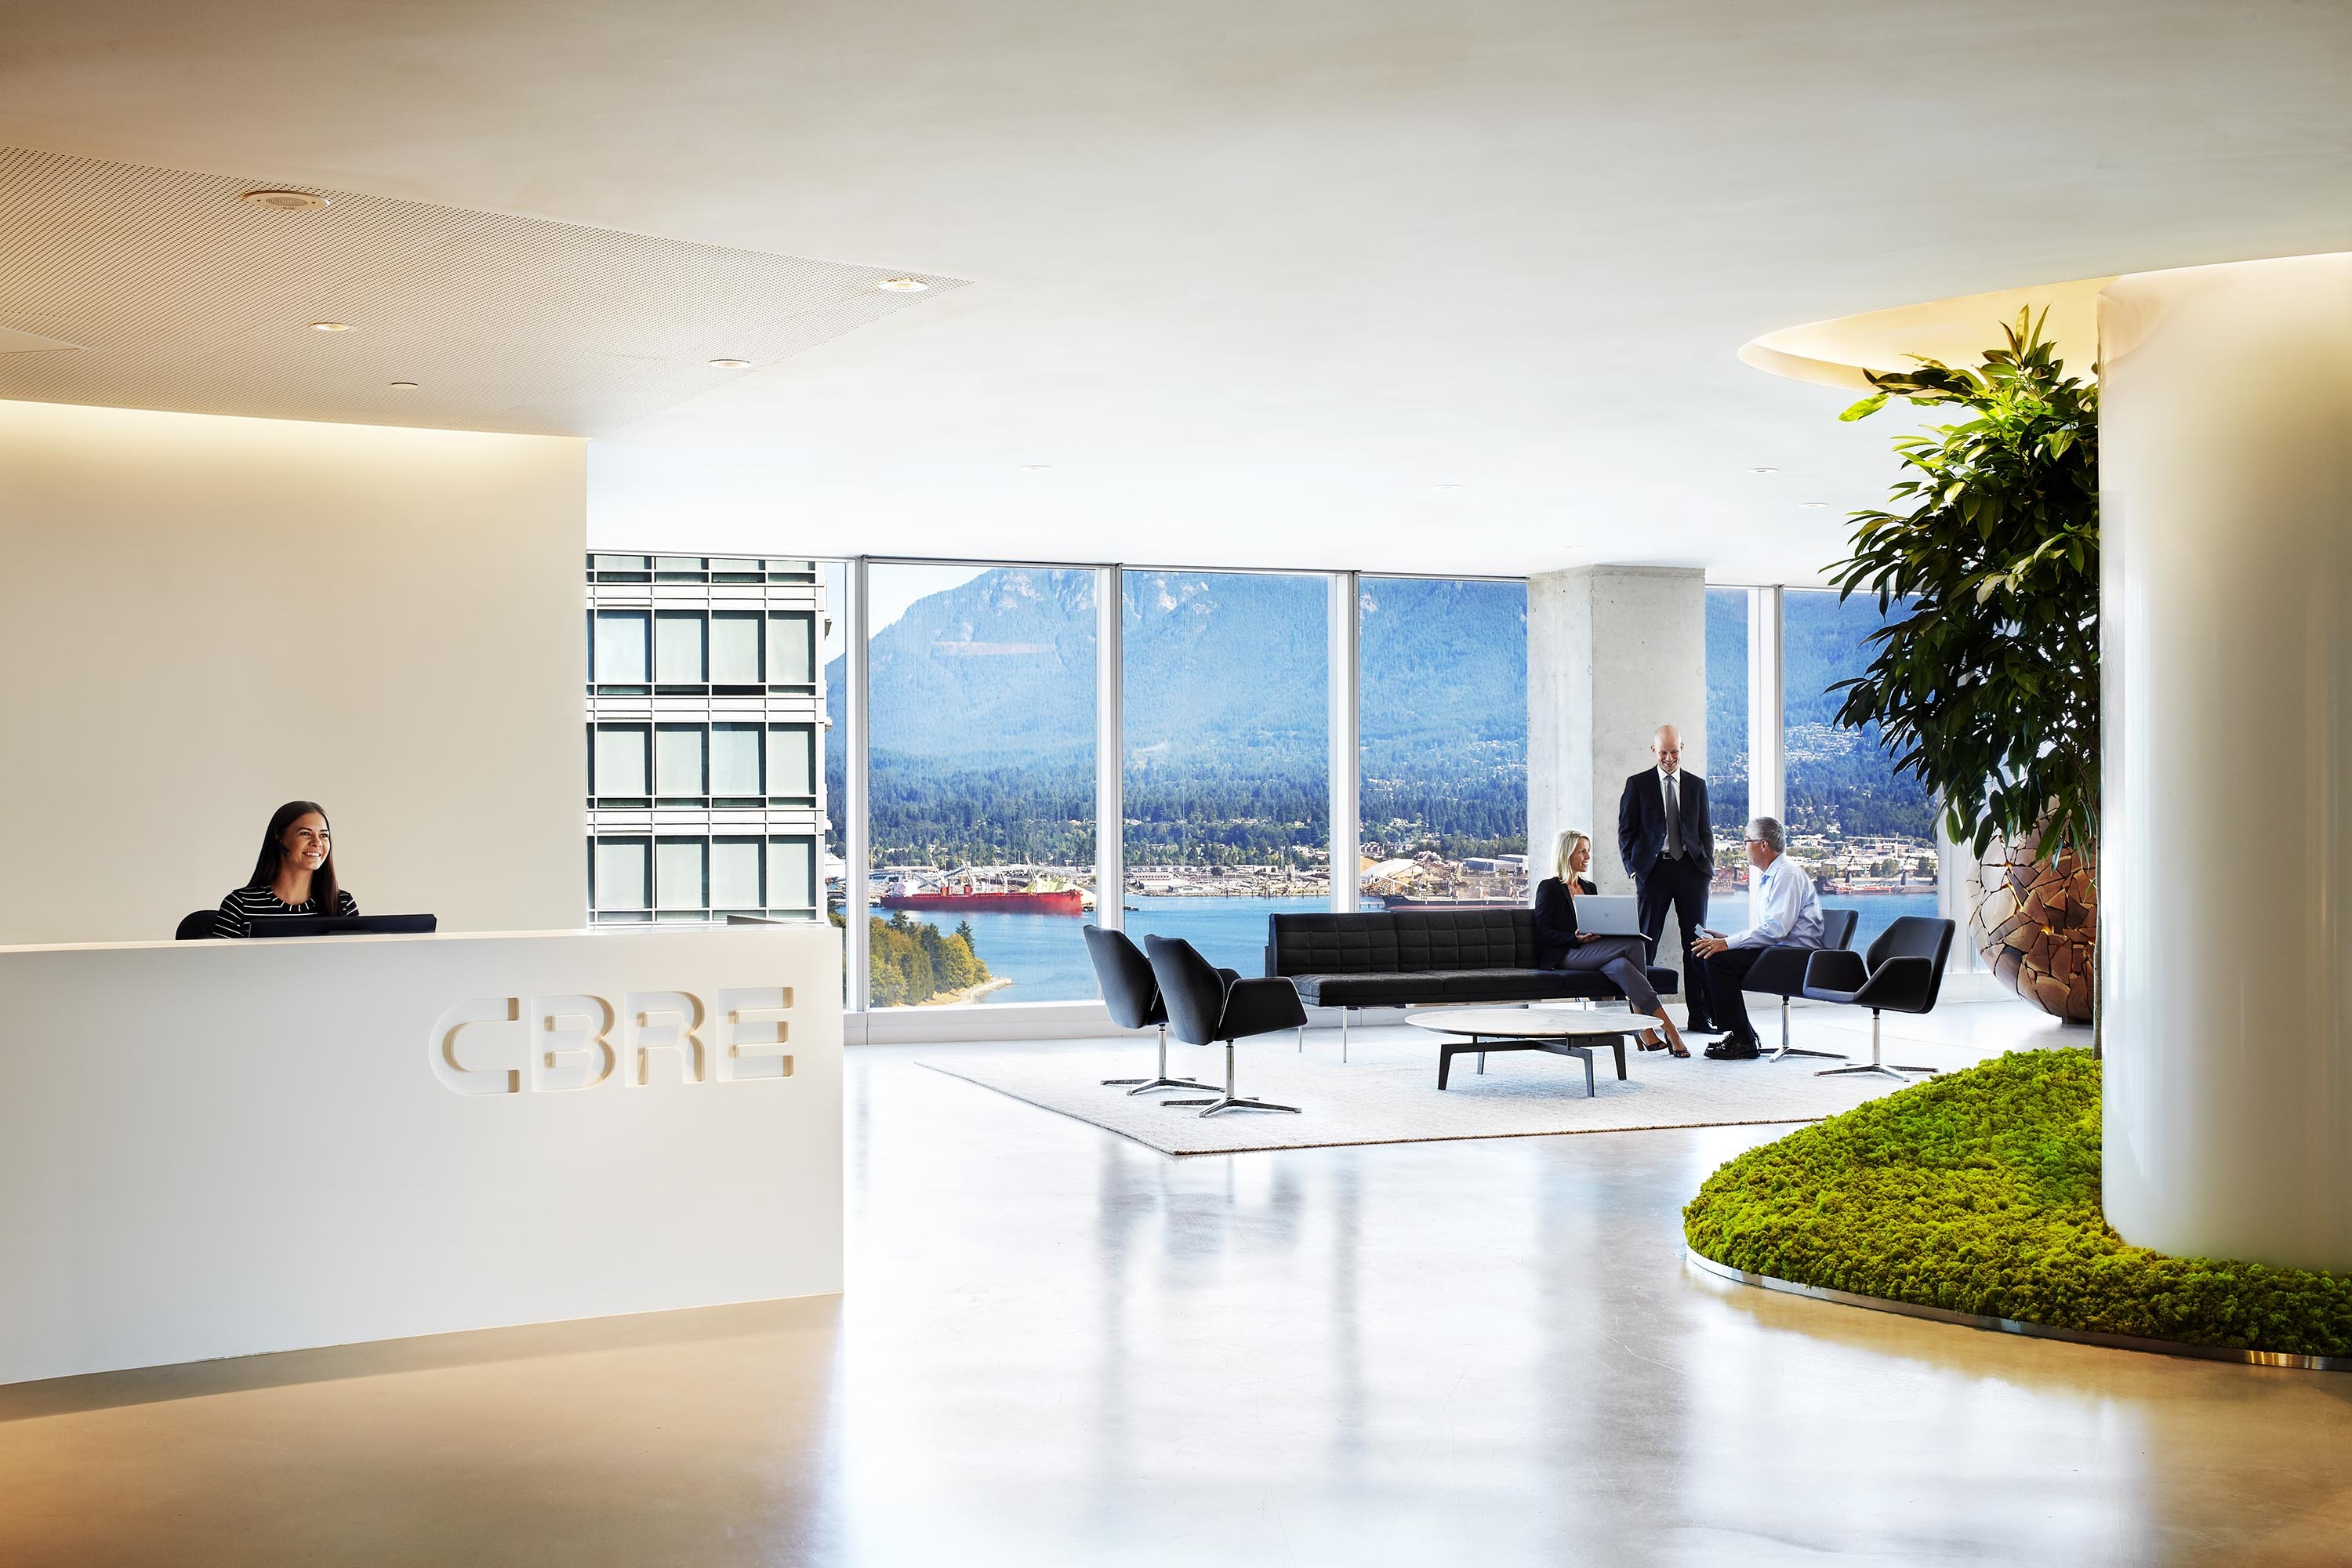 CBRE's Vancouver office (Photo: Business Wire)